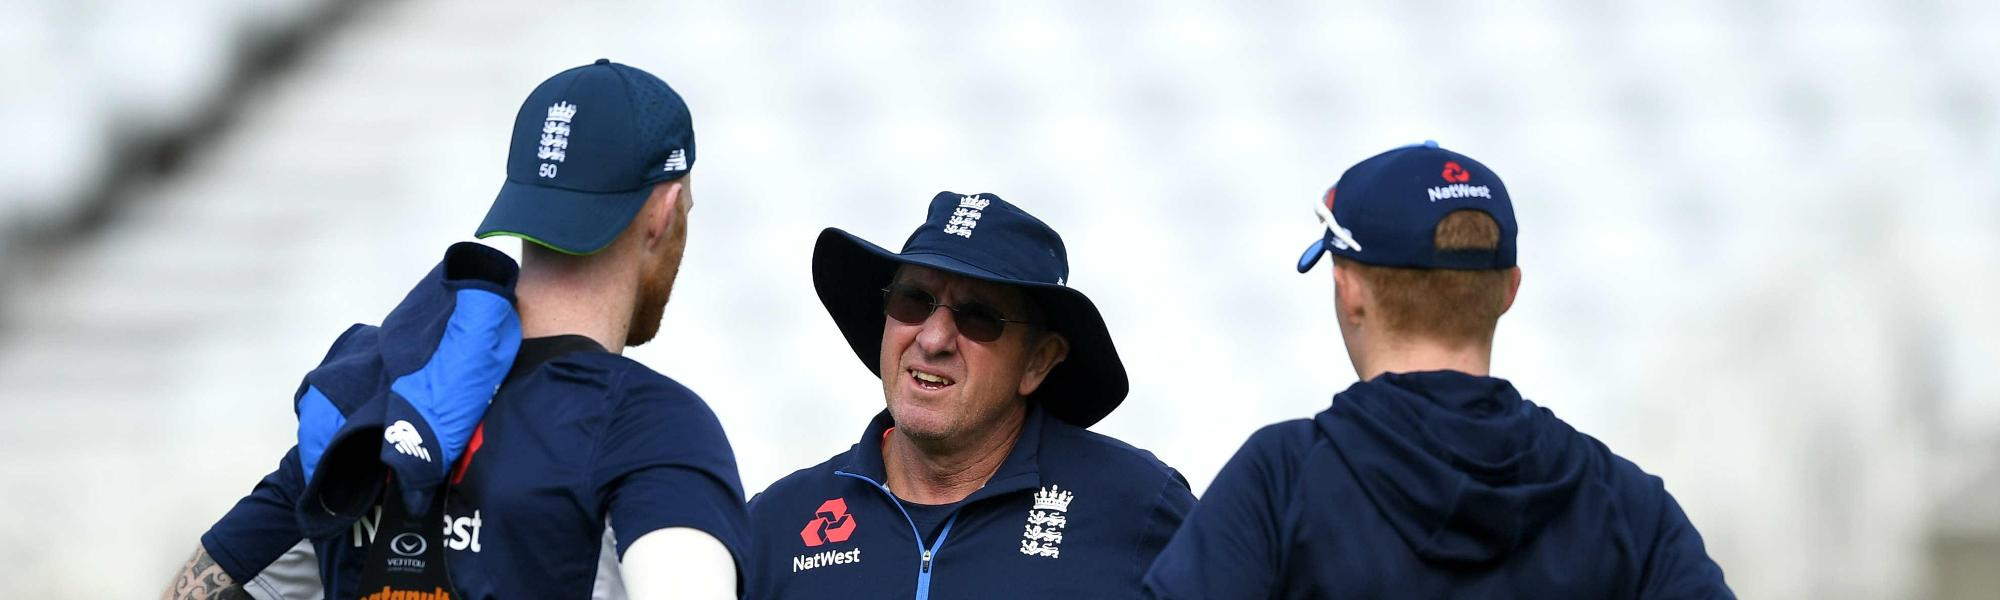 Stokes in or Stokes out? Bayliss has to put on his thinking cap to figure out the XI